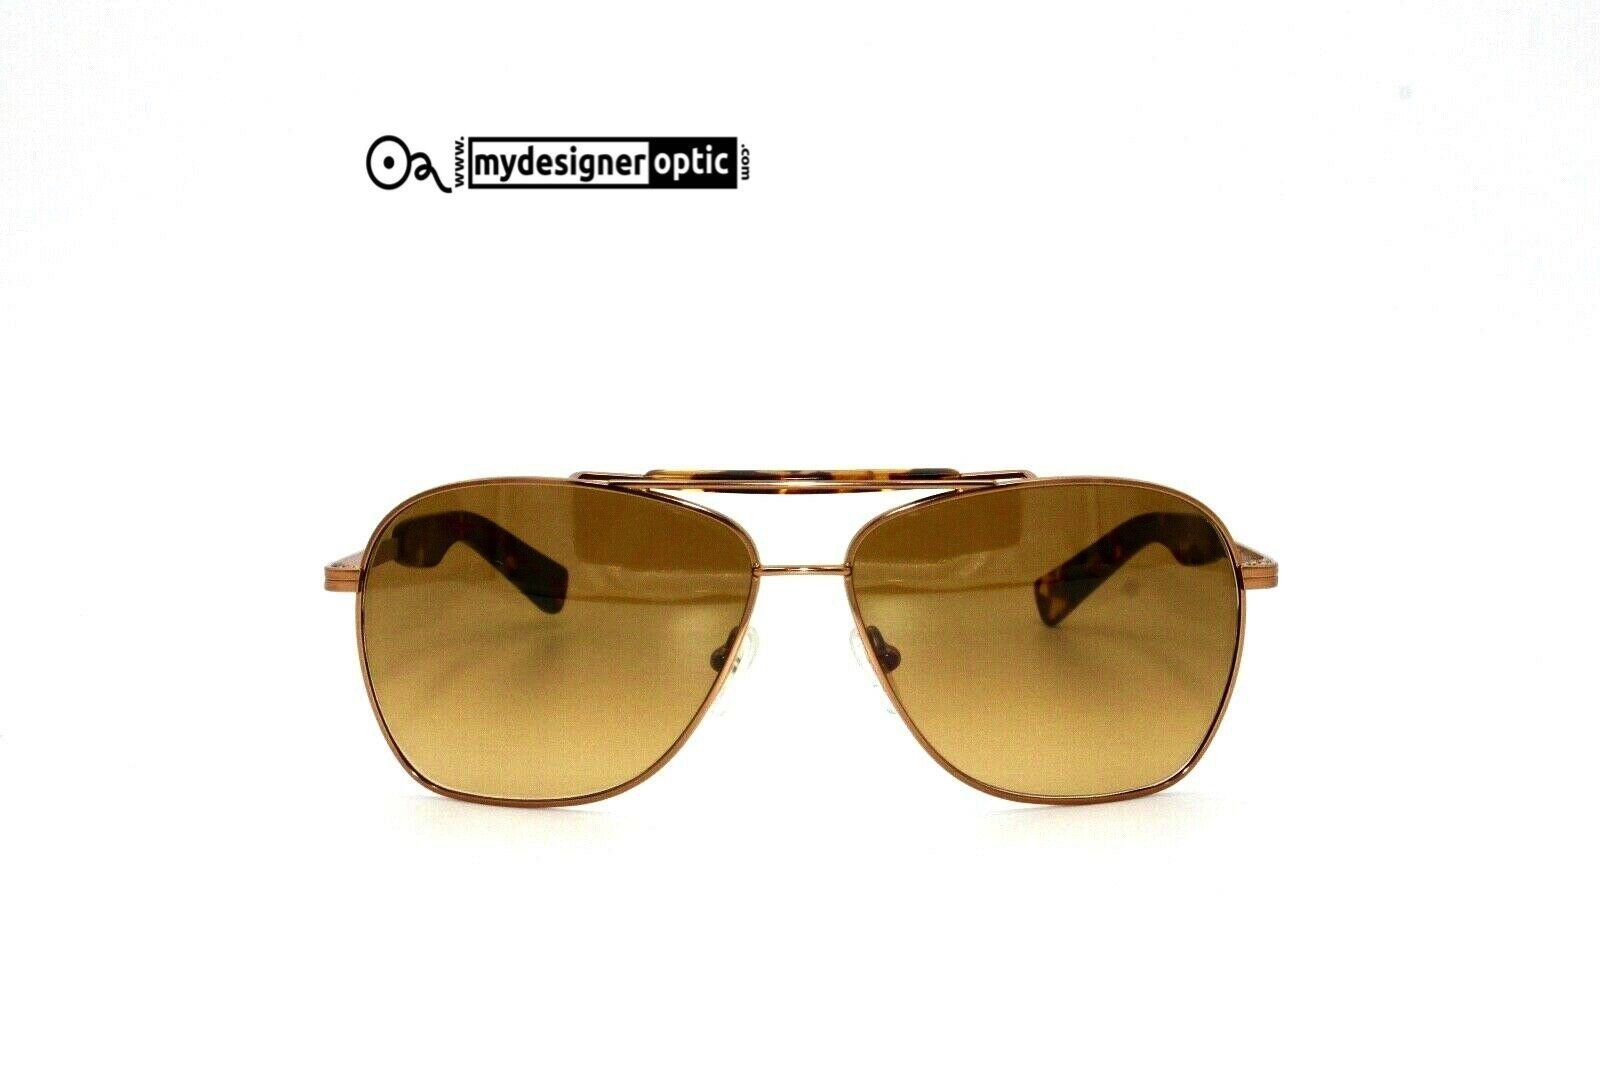 Mosley Tribes Sunglasses MT2023S 5032/51 Becker 59-13-142 3F VFX Photochromic - Mydesigneroptic